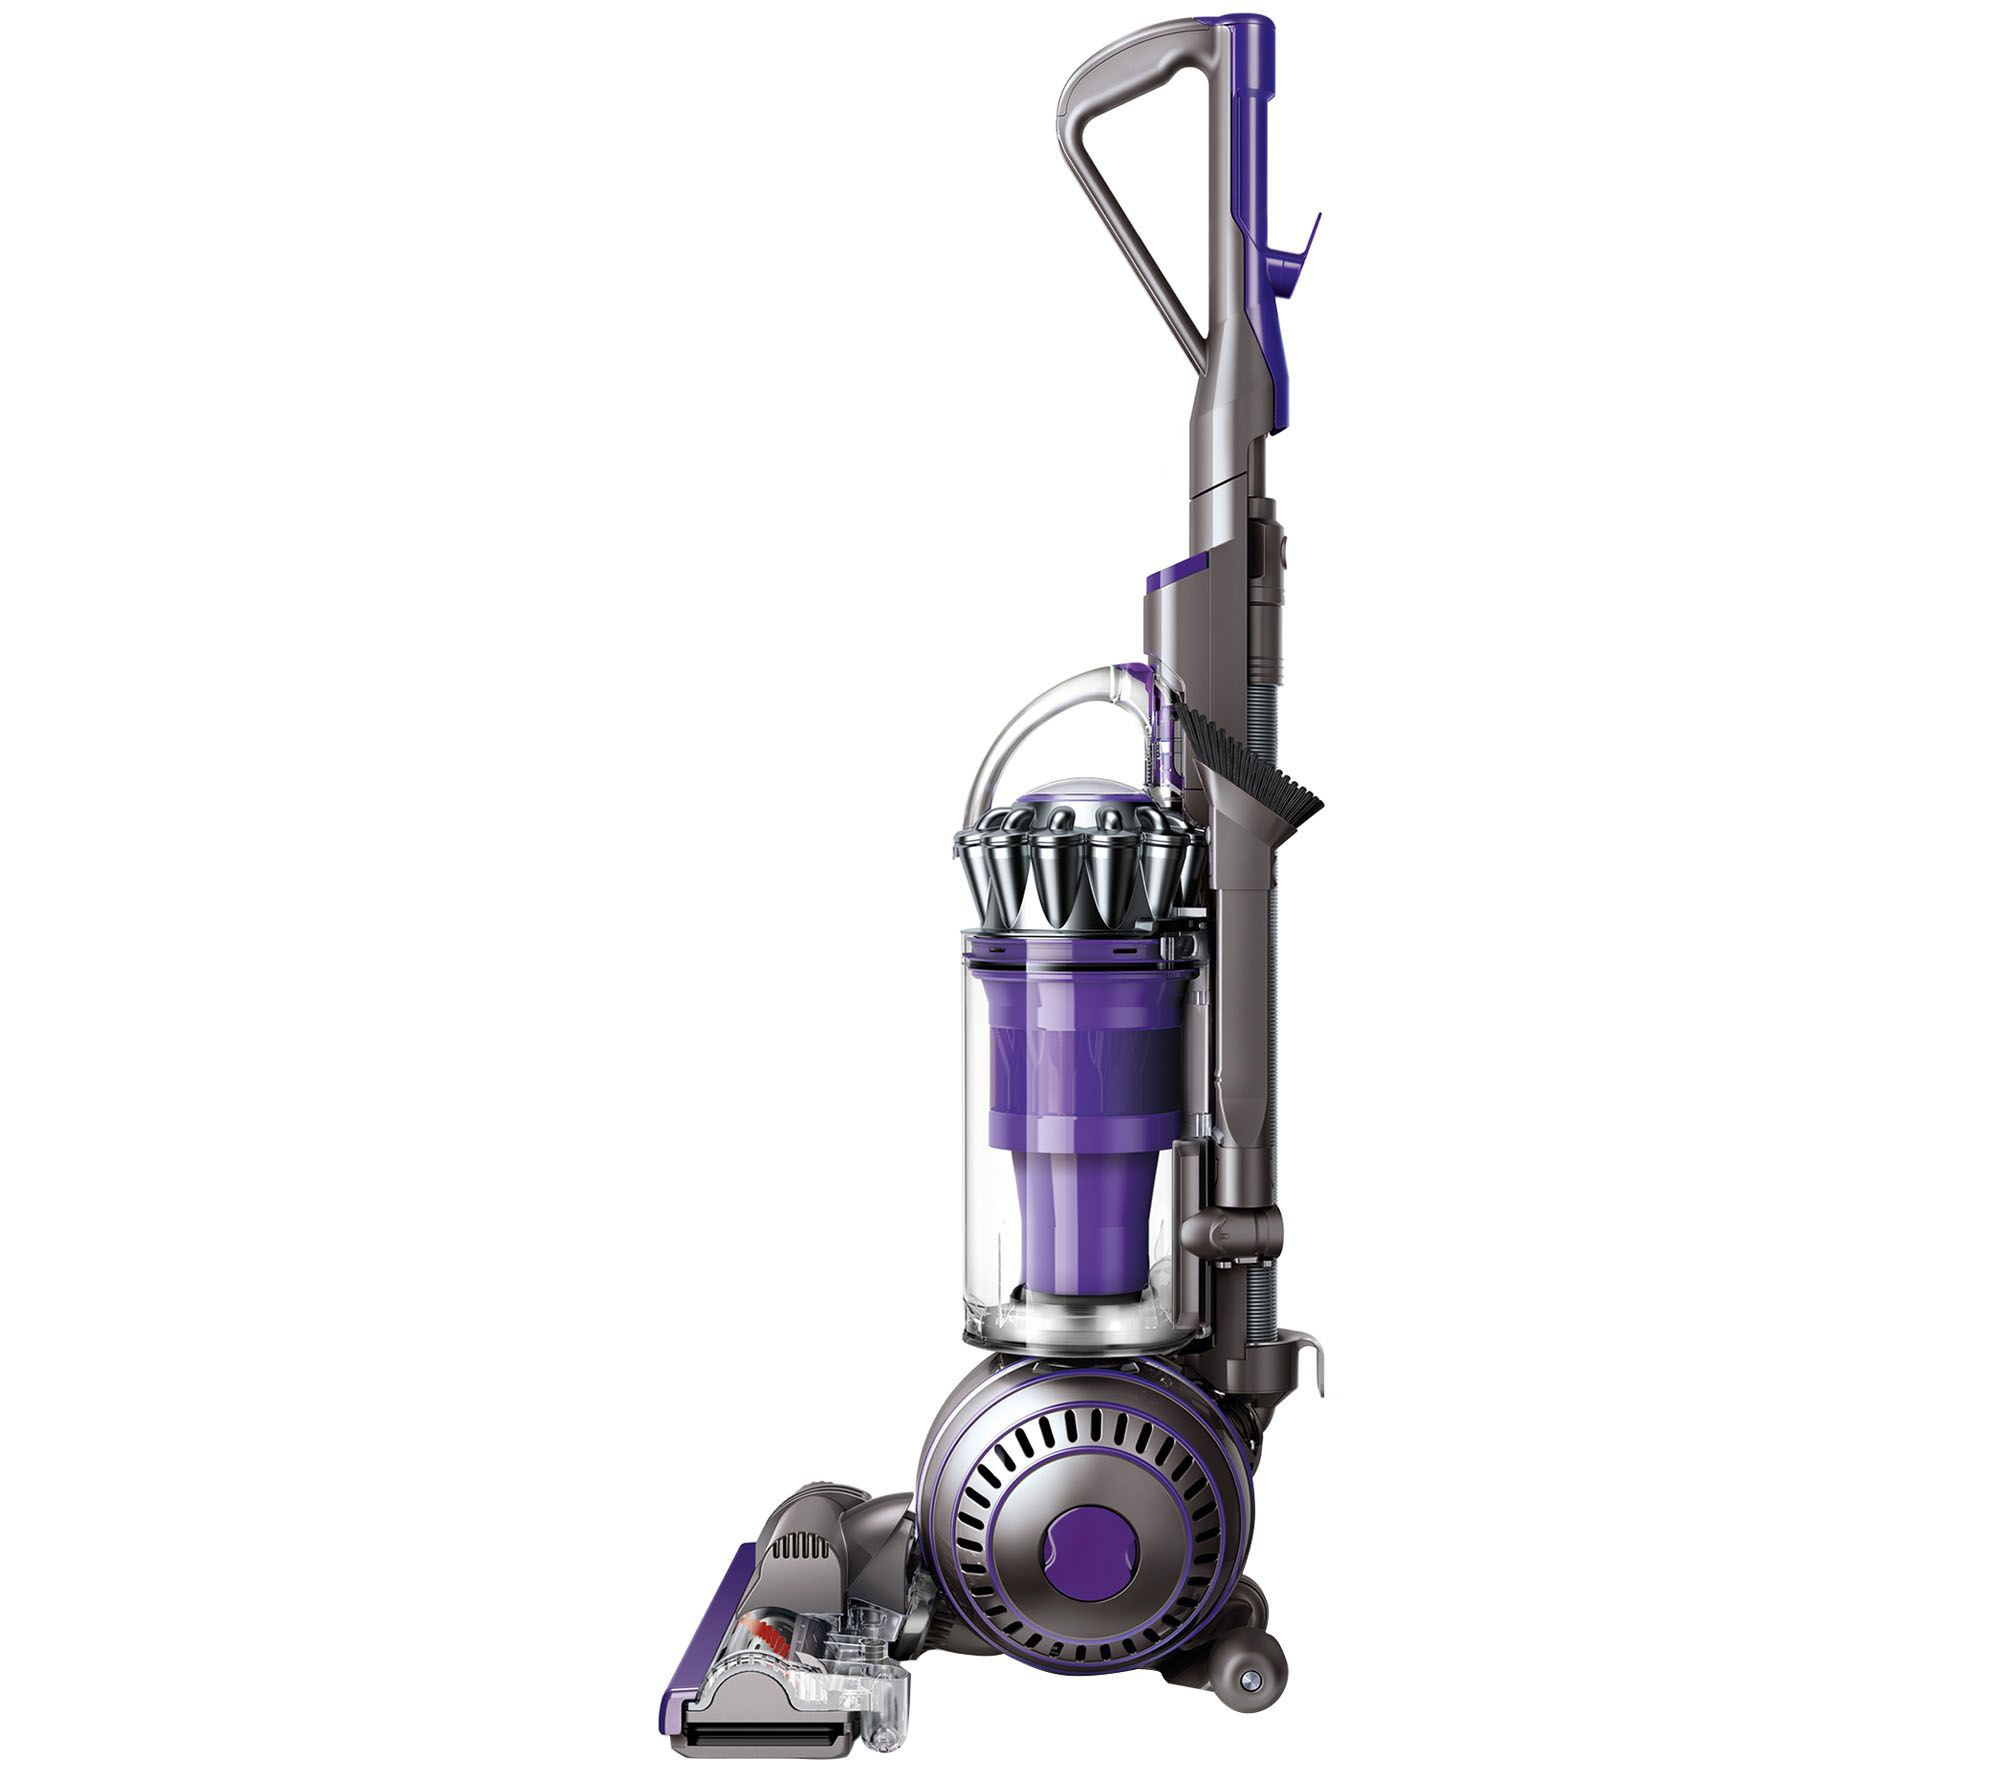 Dyson Ball Dyson Ball Animal 2 Upright Vacuum Page 1 Qvc